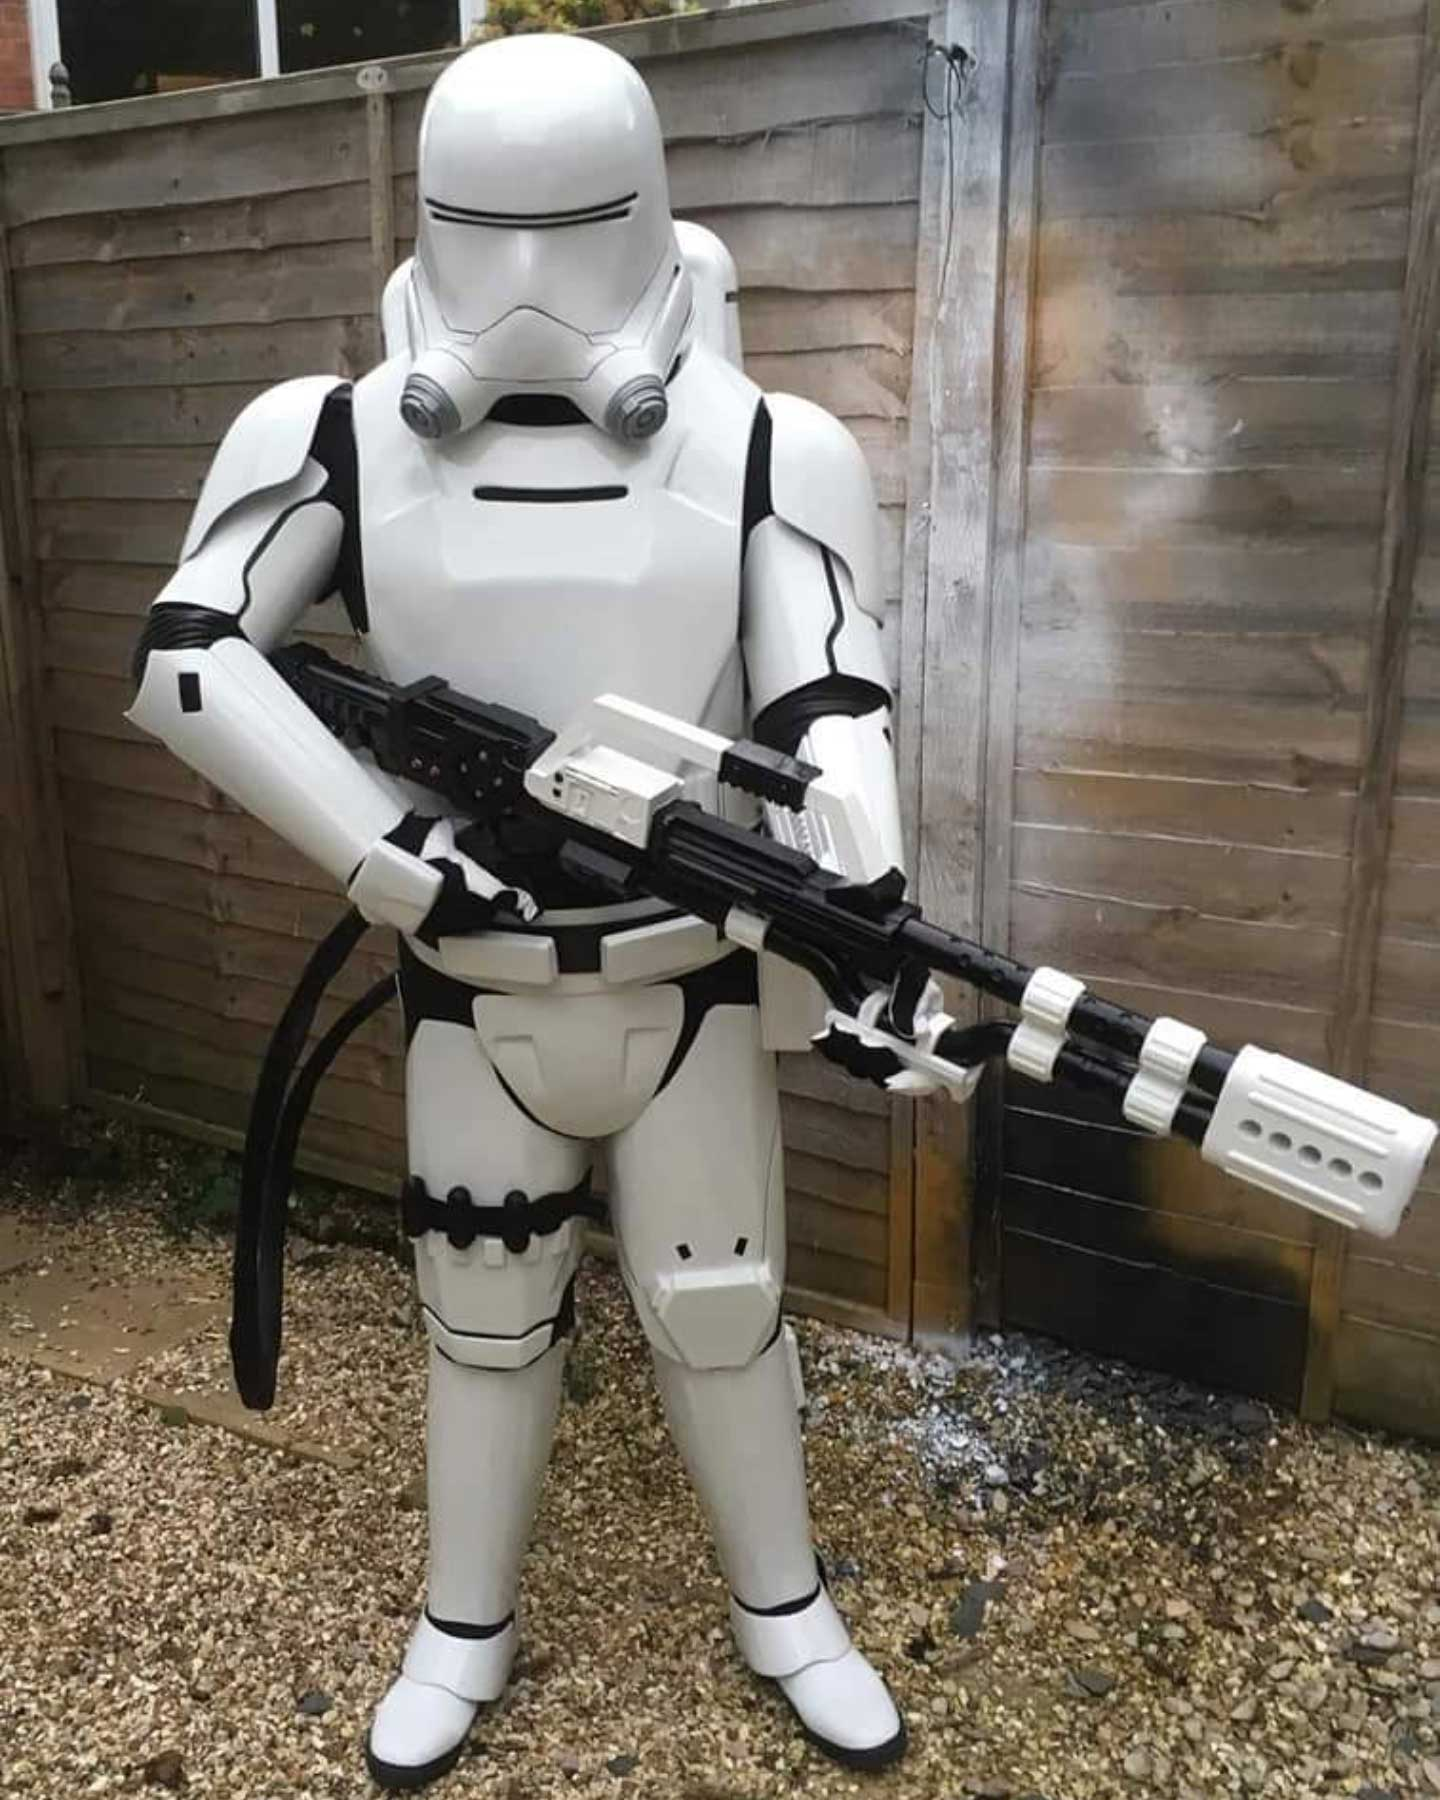 Stormtrooper Accessories Review from Darrell